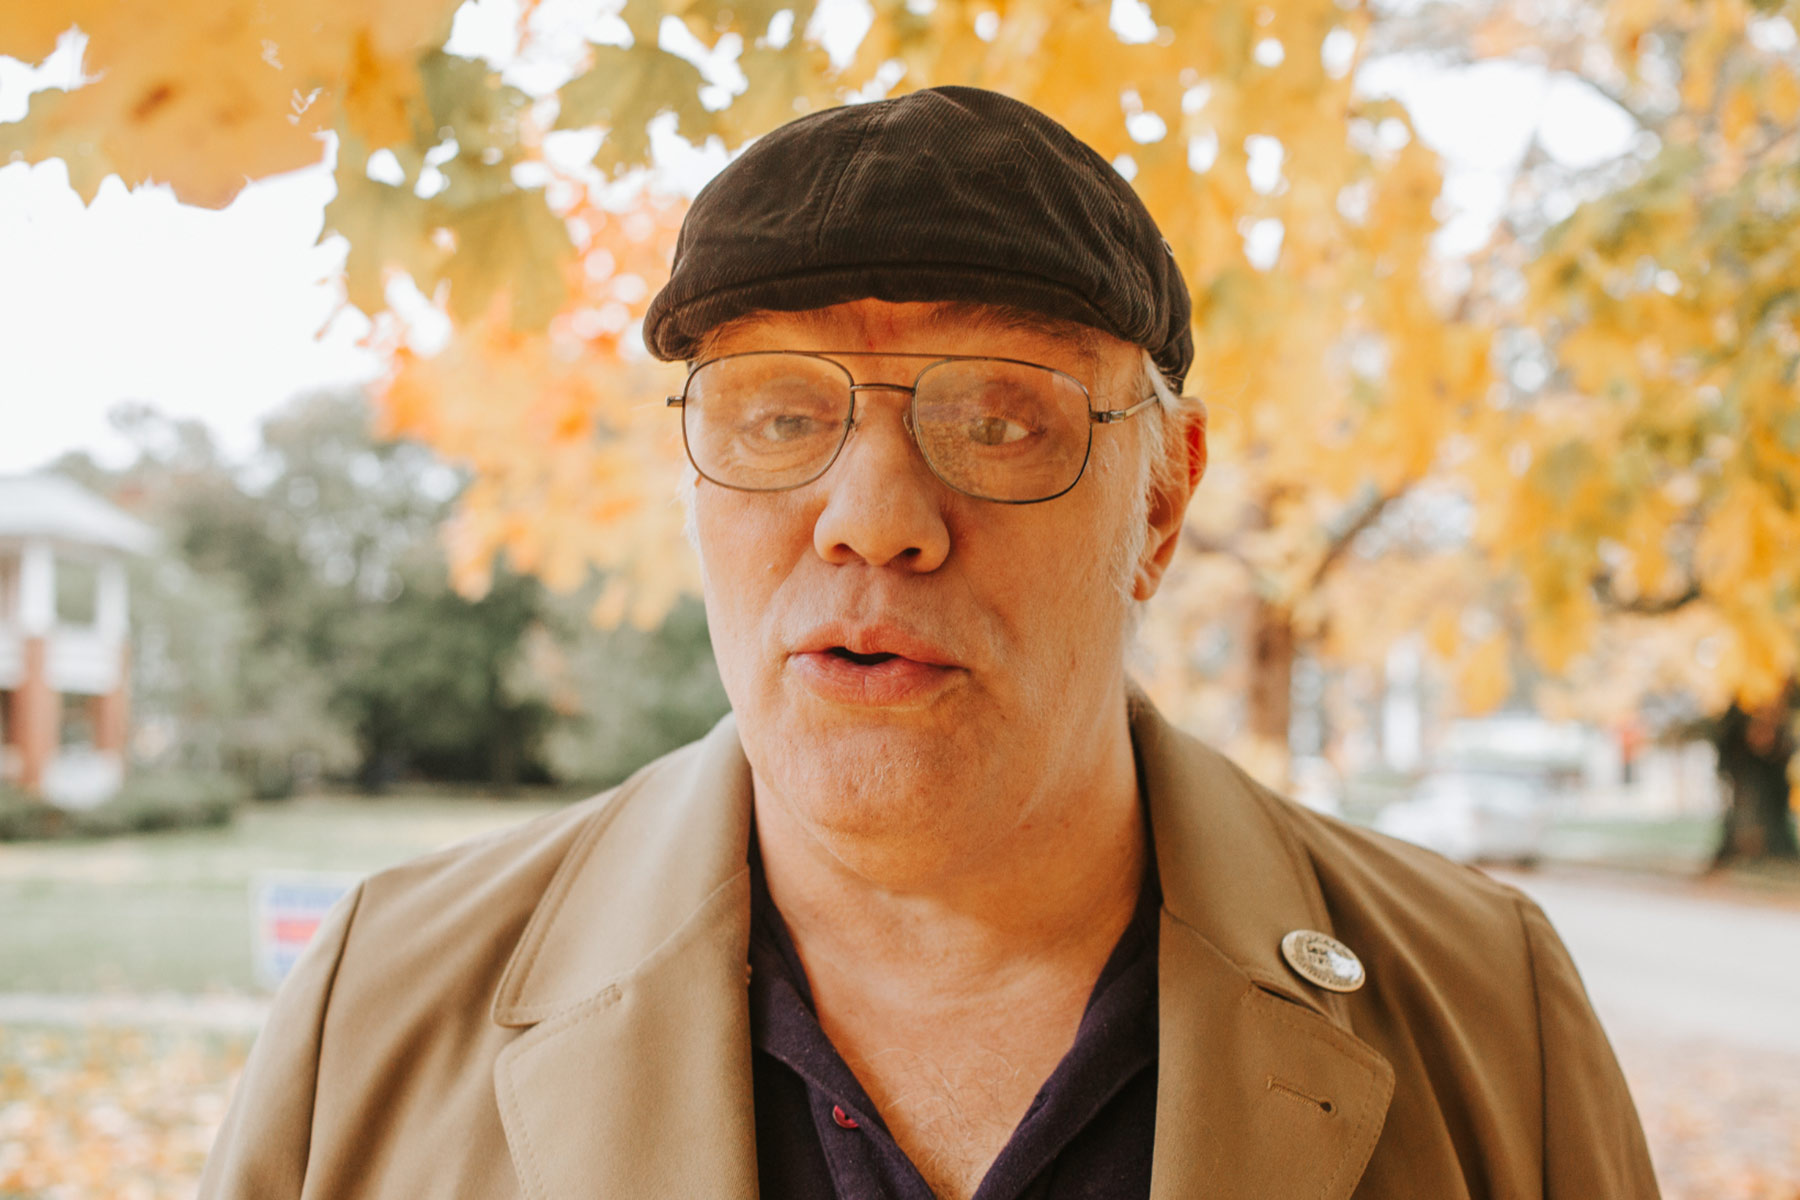 Donald Young, an elderly white man, stands in an outdoor setting under a tree. He is wearing a black ivy hat with black-framed spectacles and a brown coat.